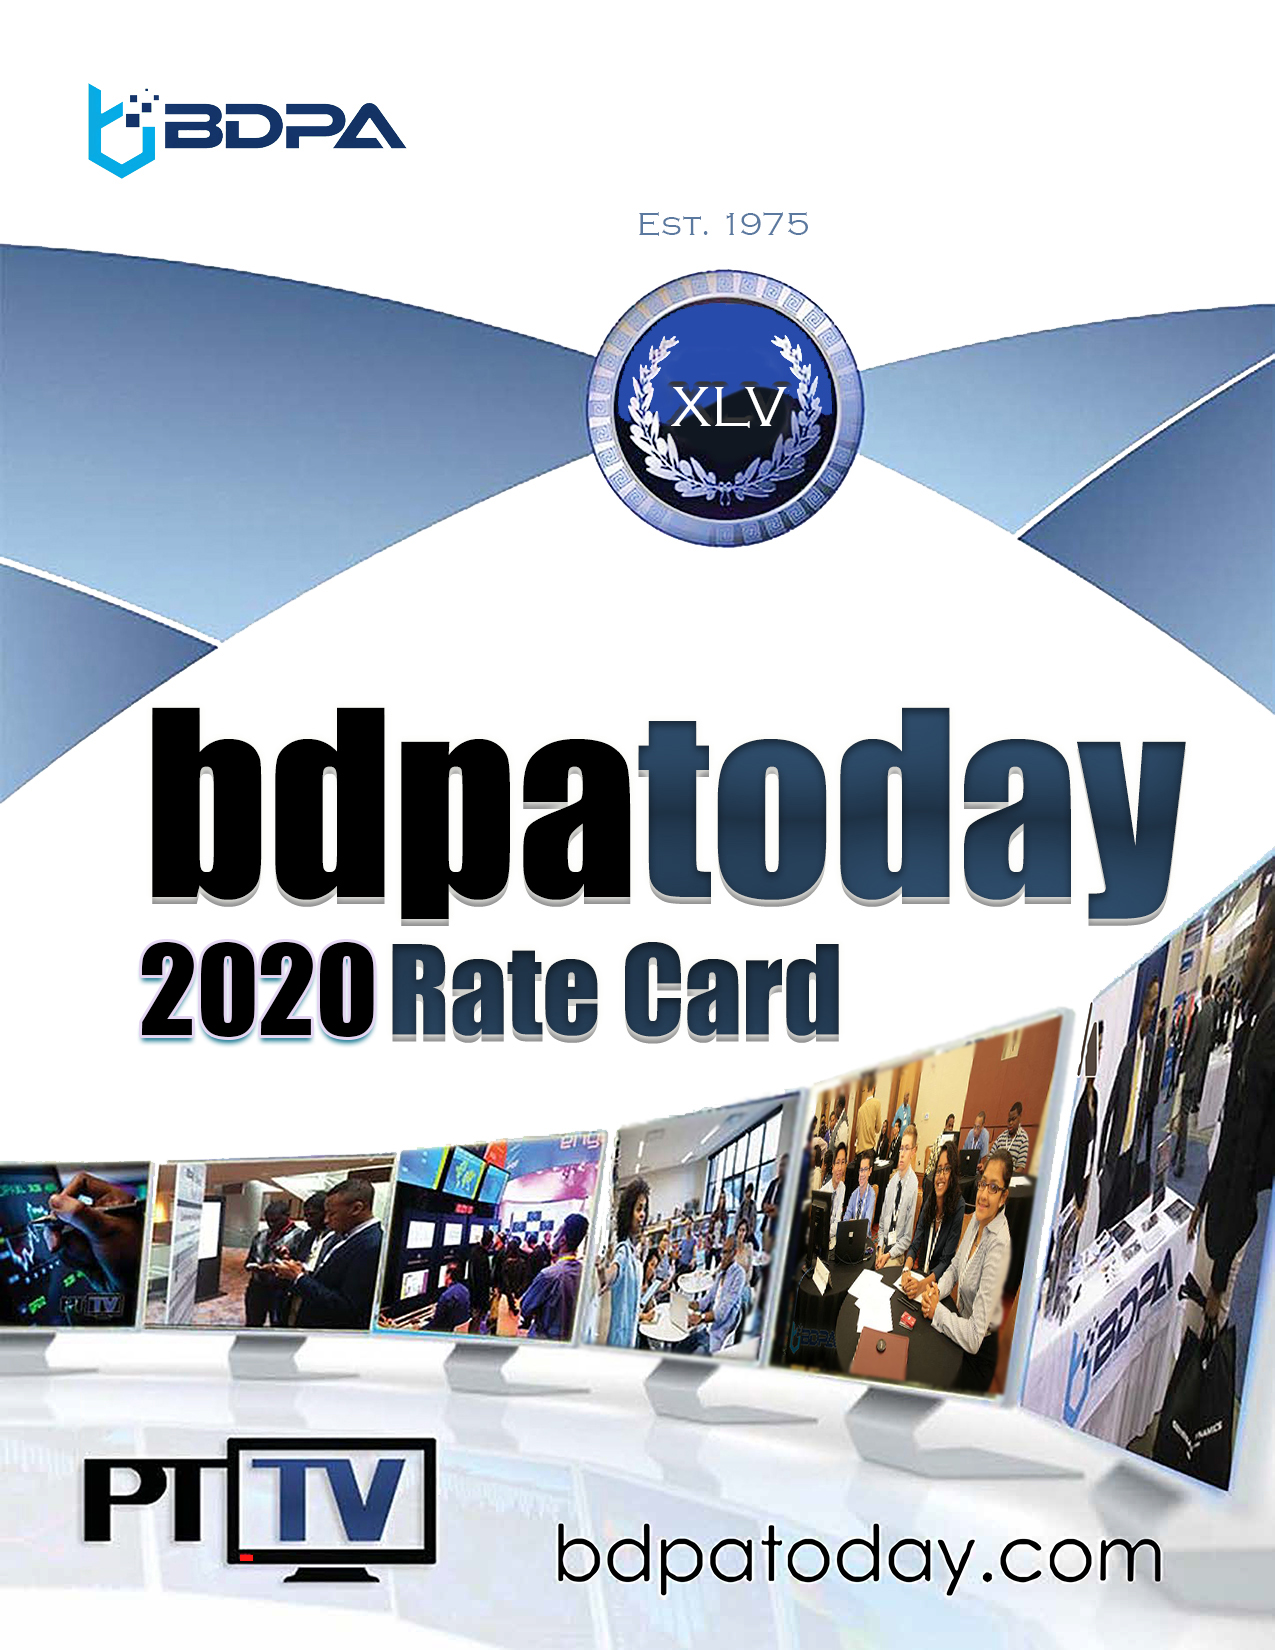 2020 Rate Schedules for PTTV and bdpatoday